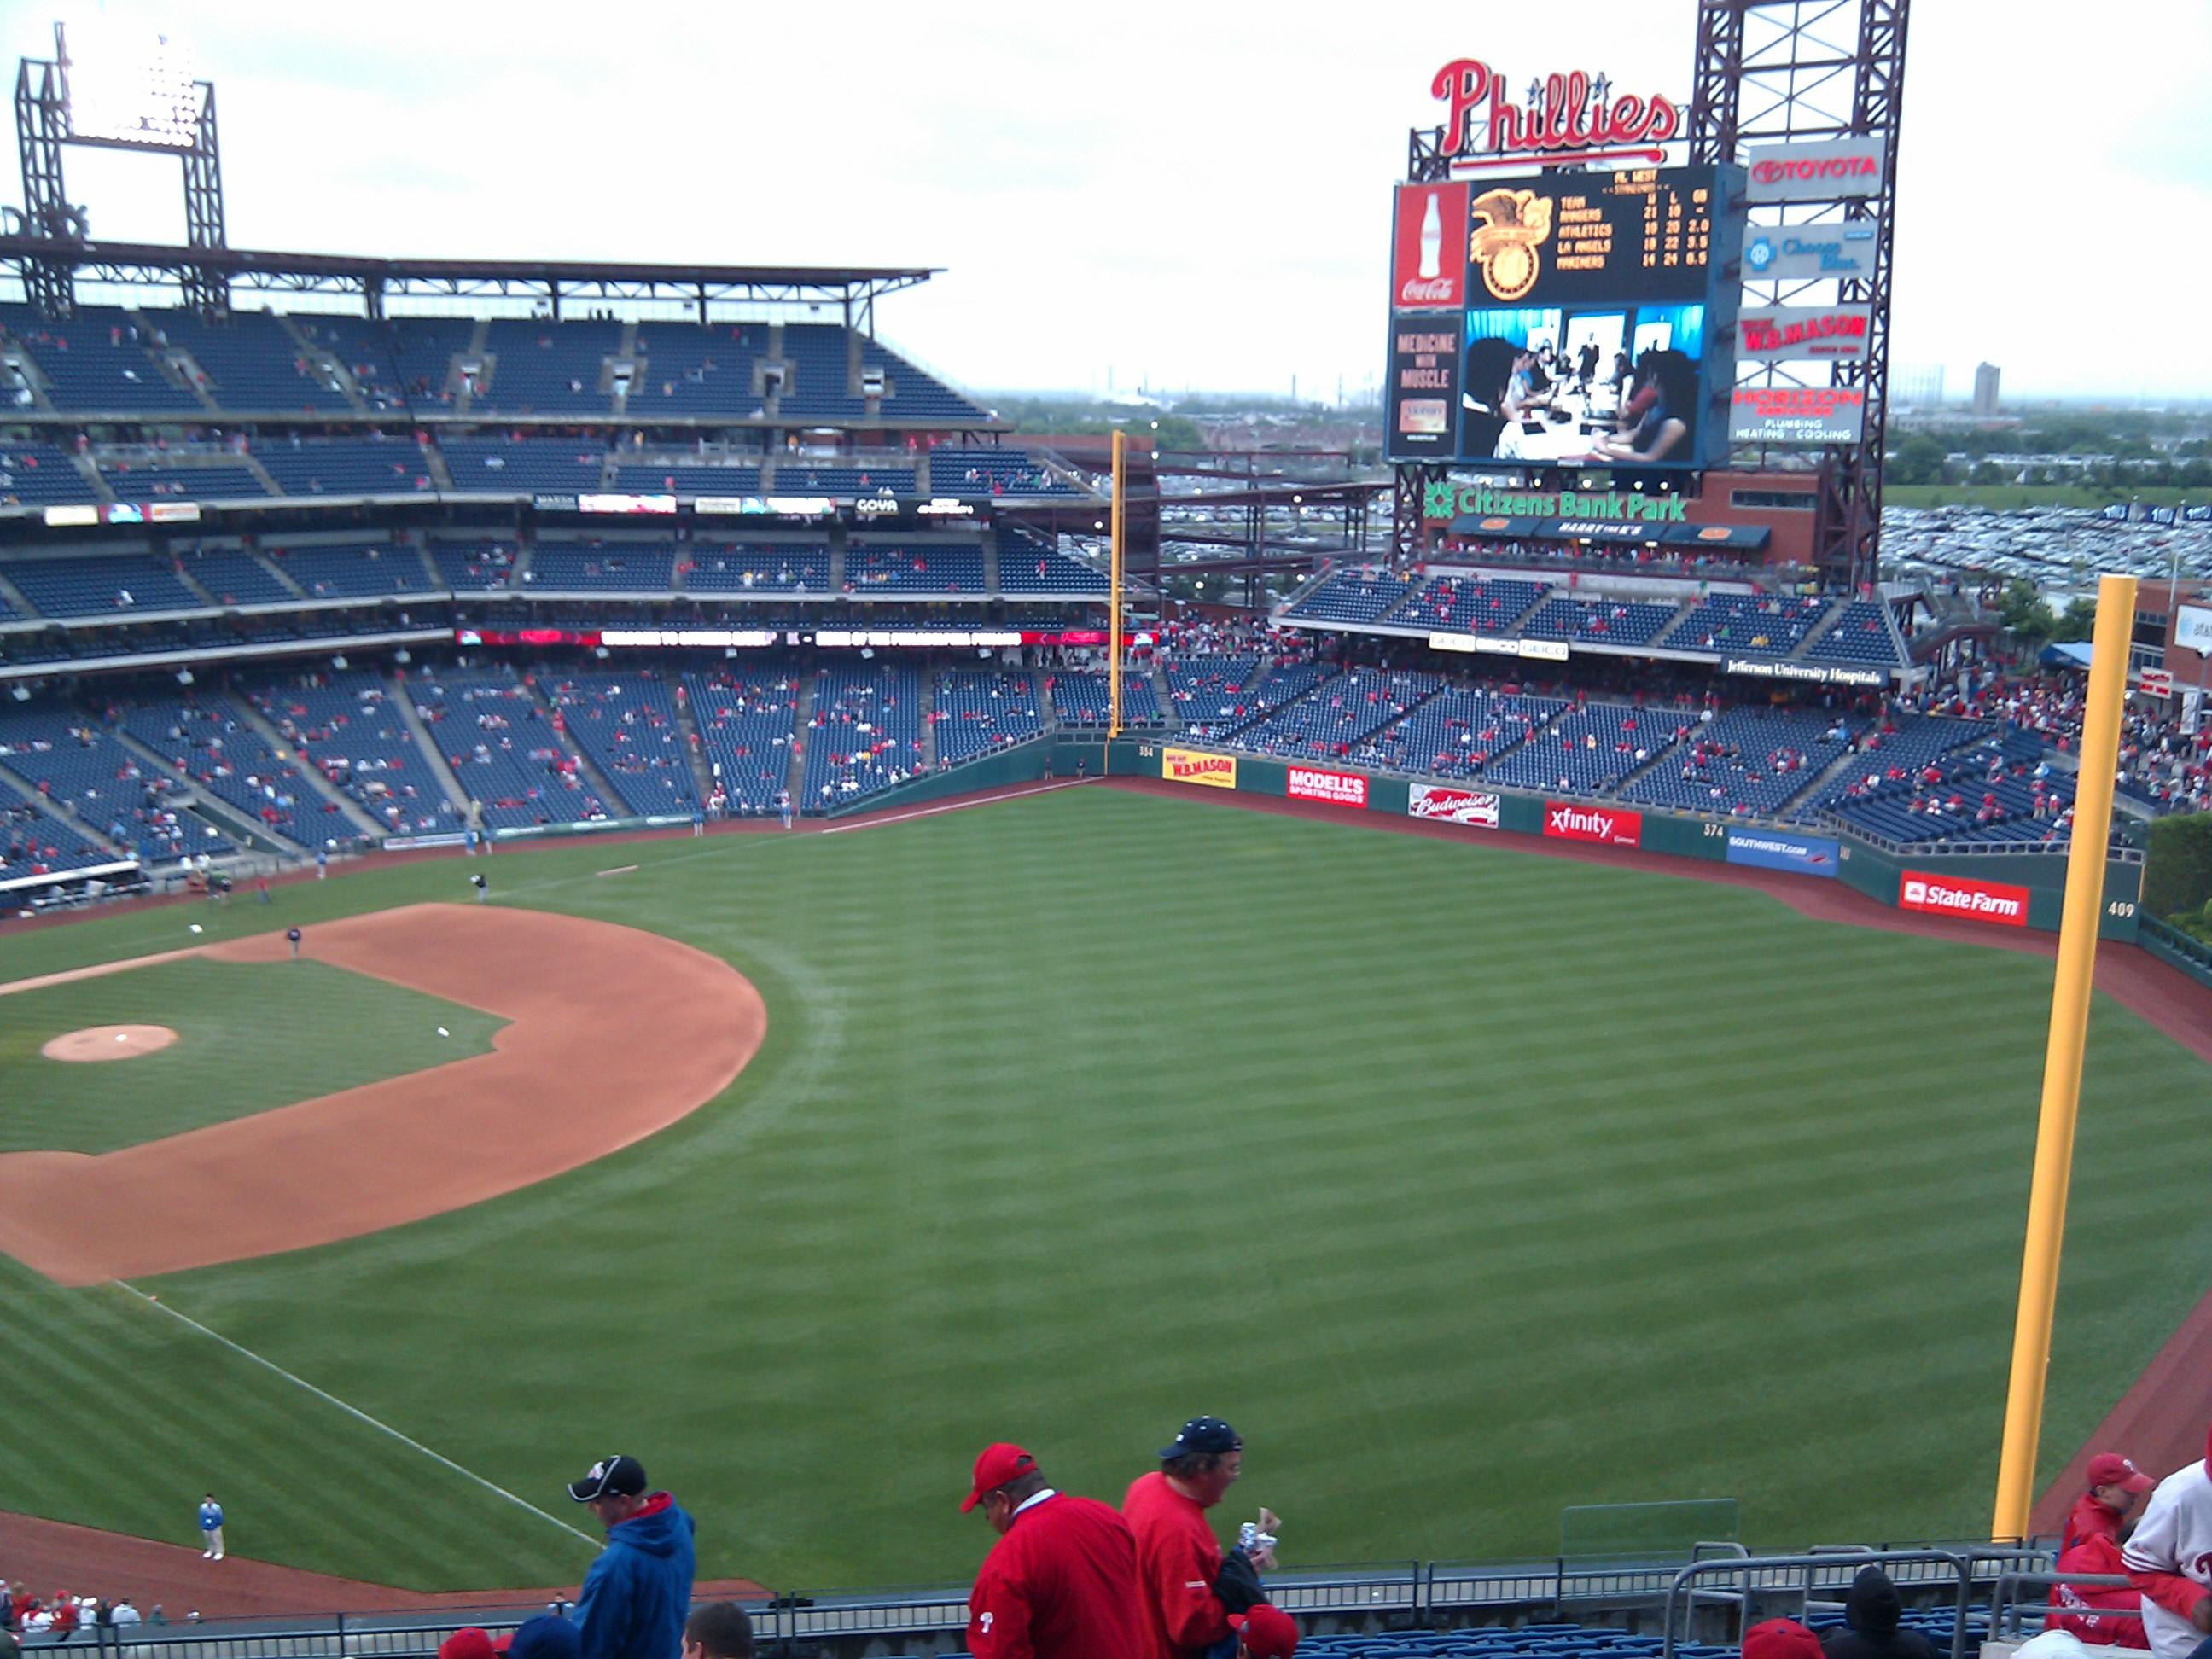 Citizens Bank Park Section 308 Row 16 Seat 9